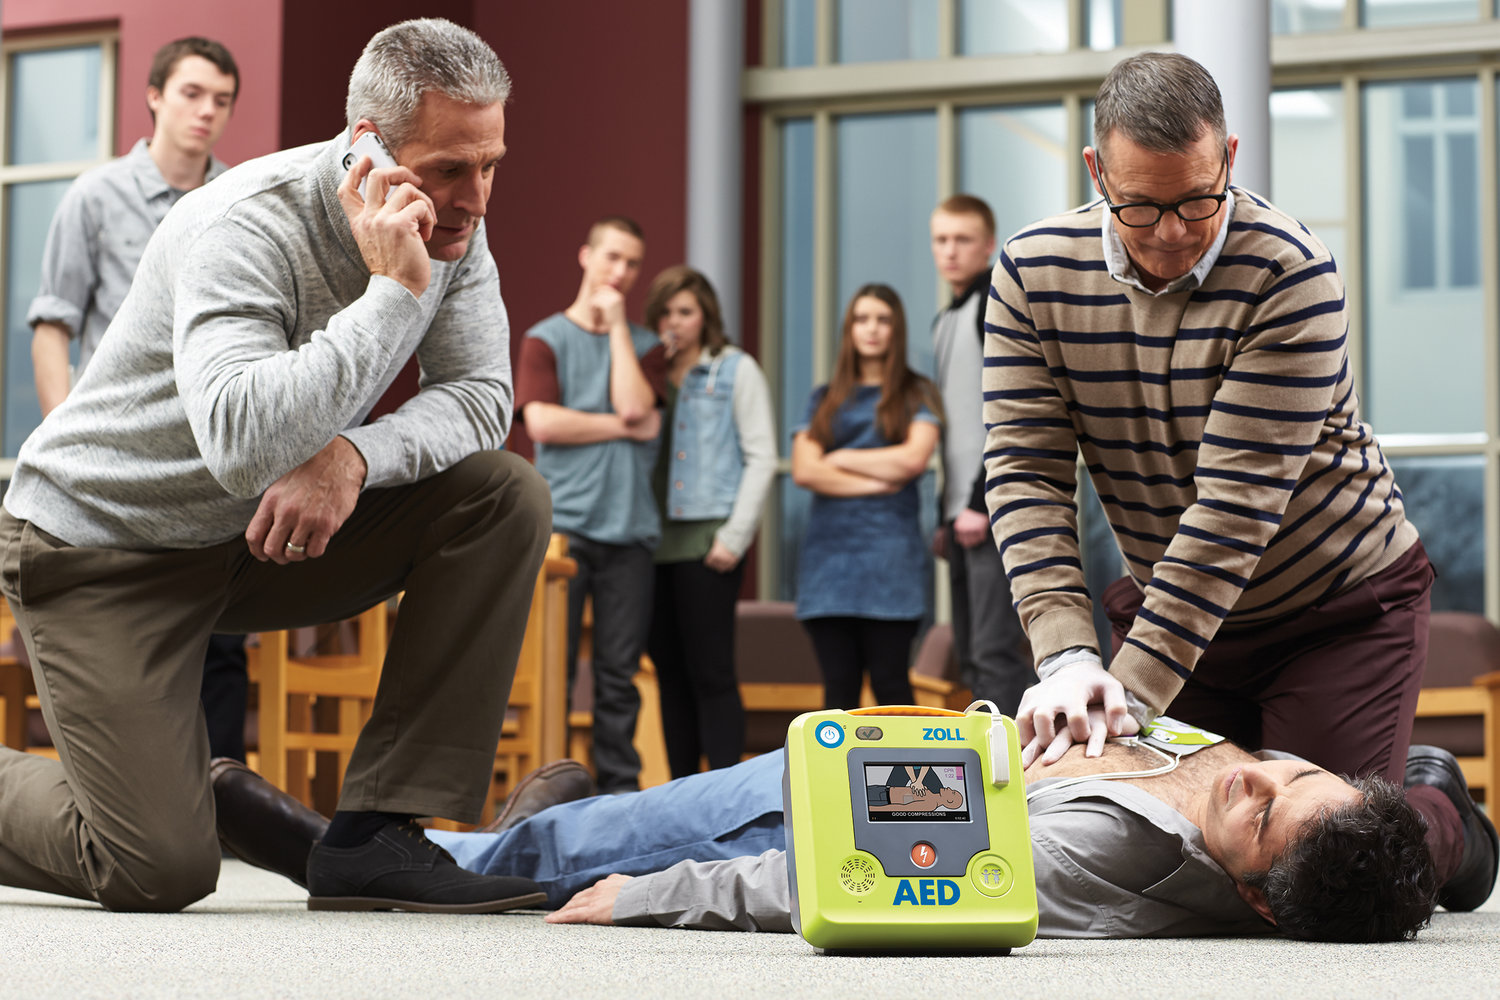 How to use an Automated External Defibrillator (AED) — Save-A-Life